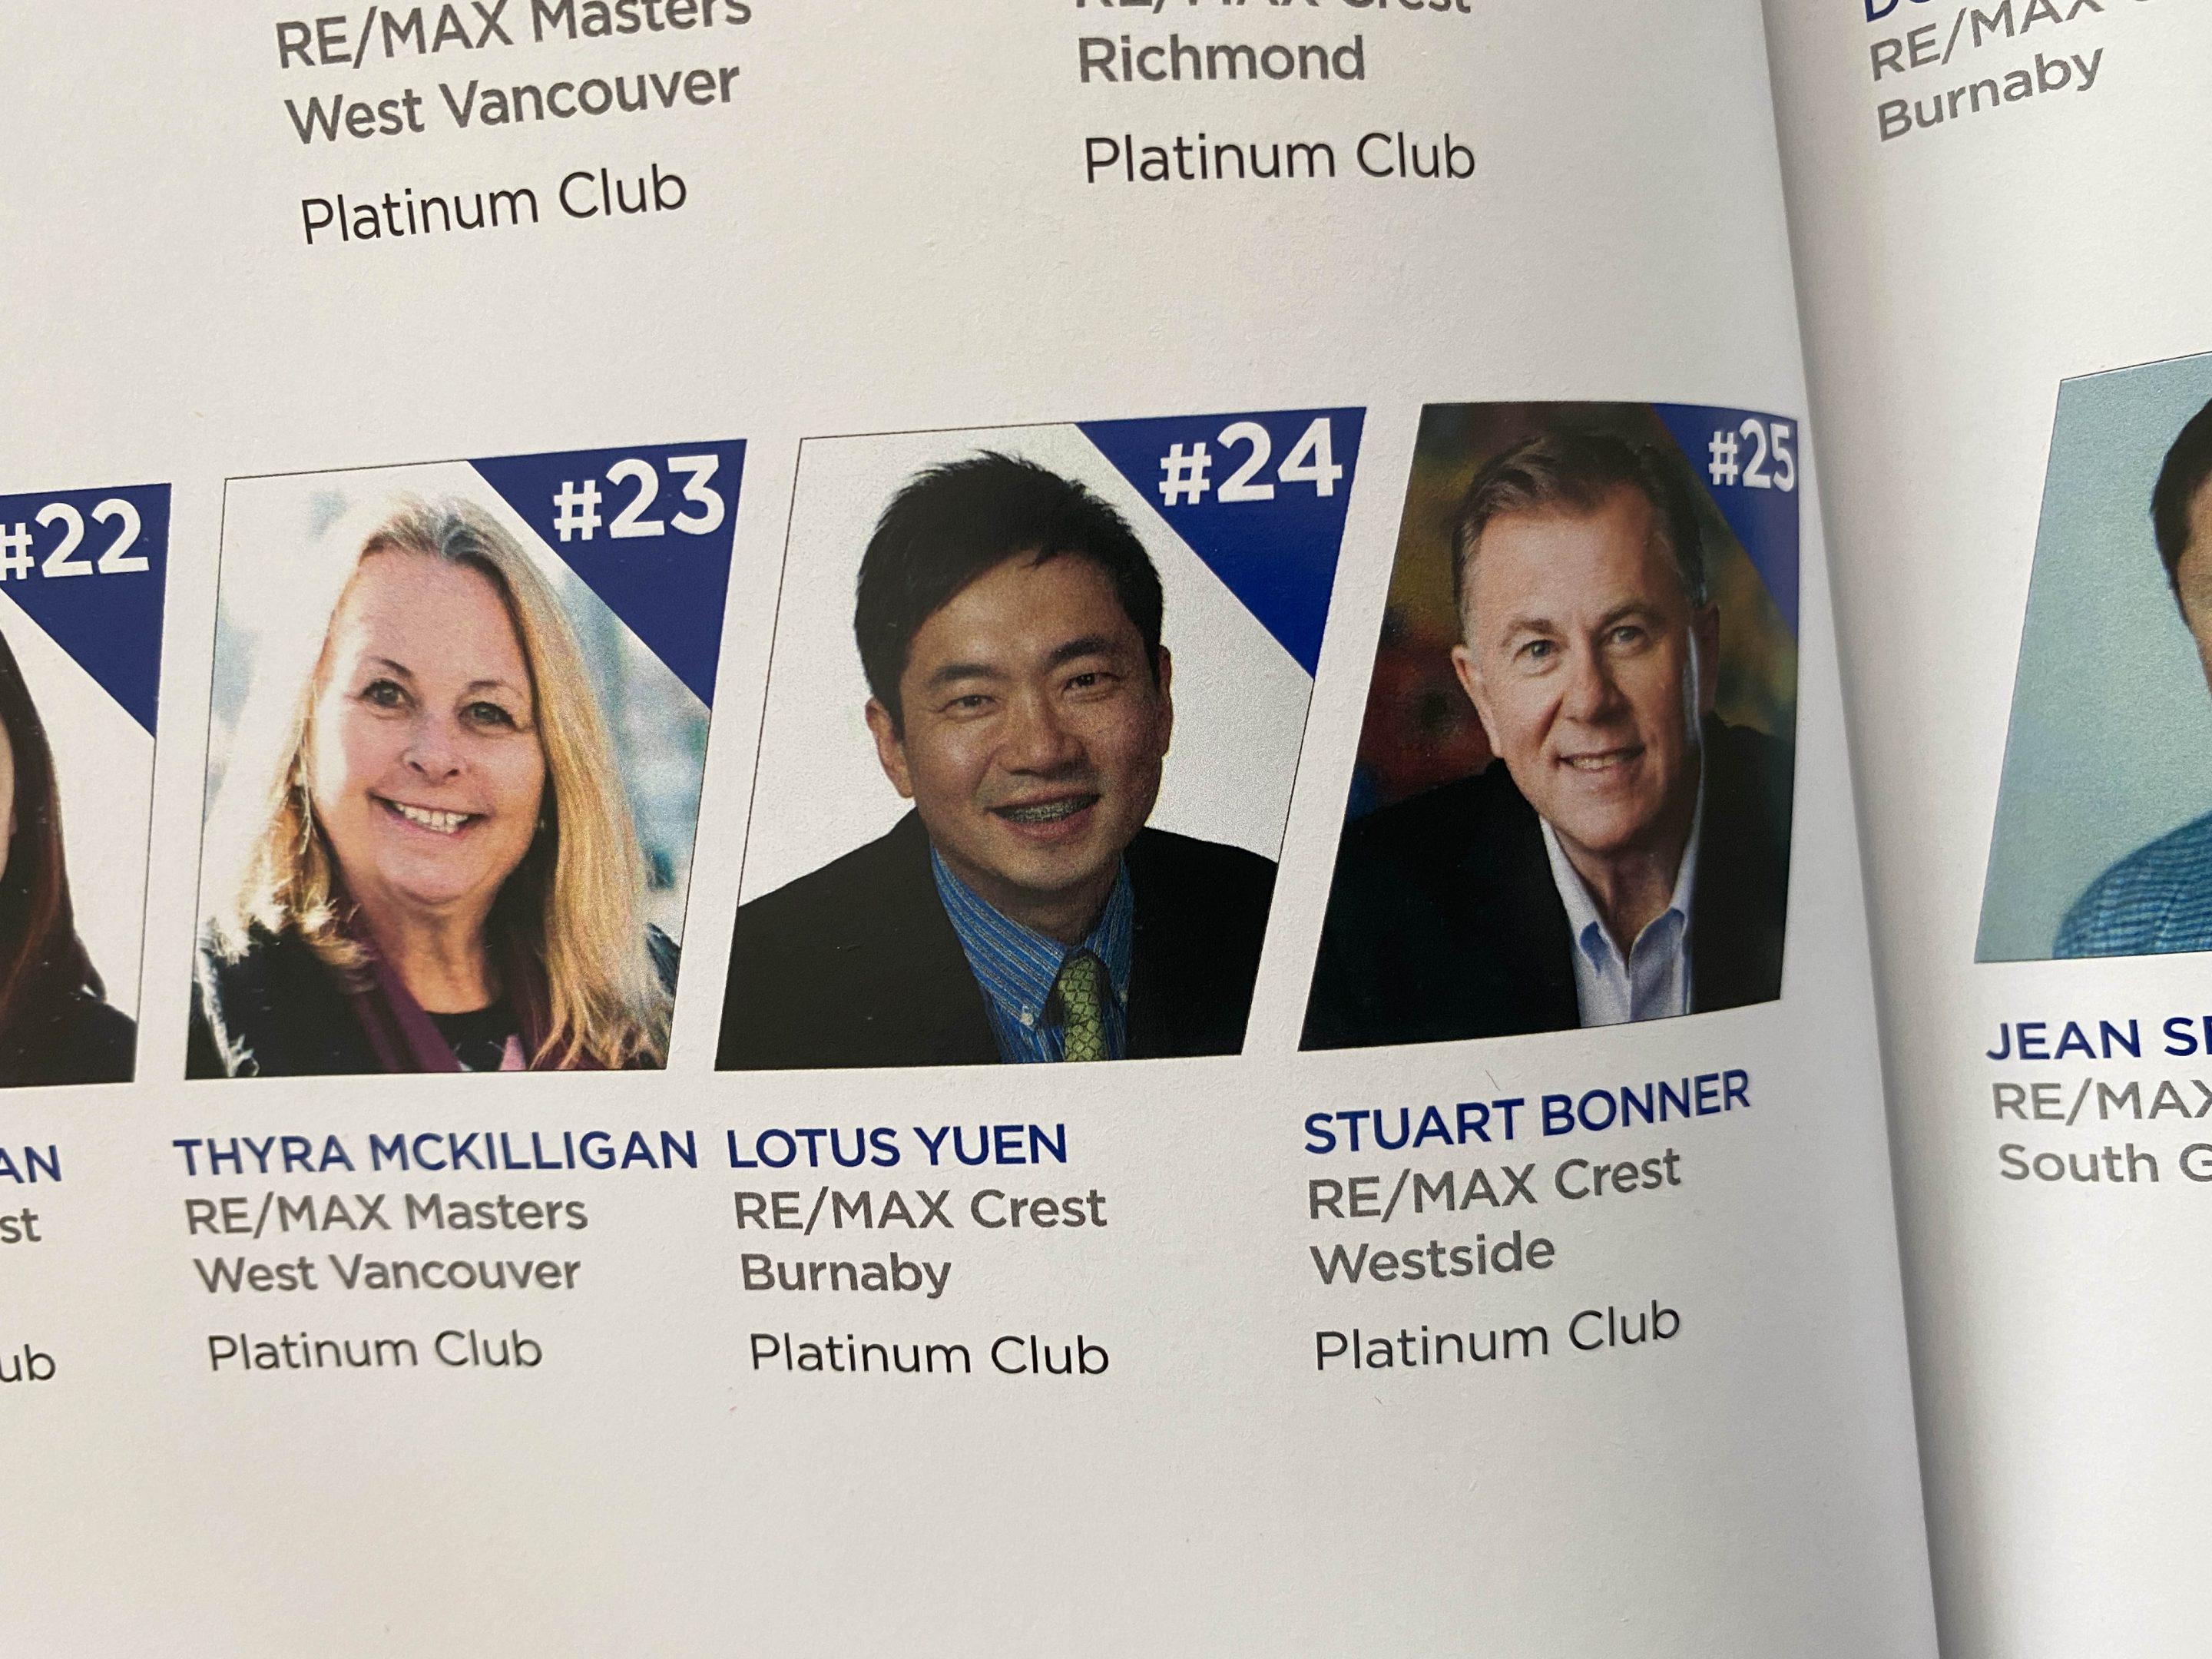 REMAX Year book 2020 - Lotus Yuen Ranked 24 in Remax Crest and Remax Master